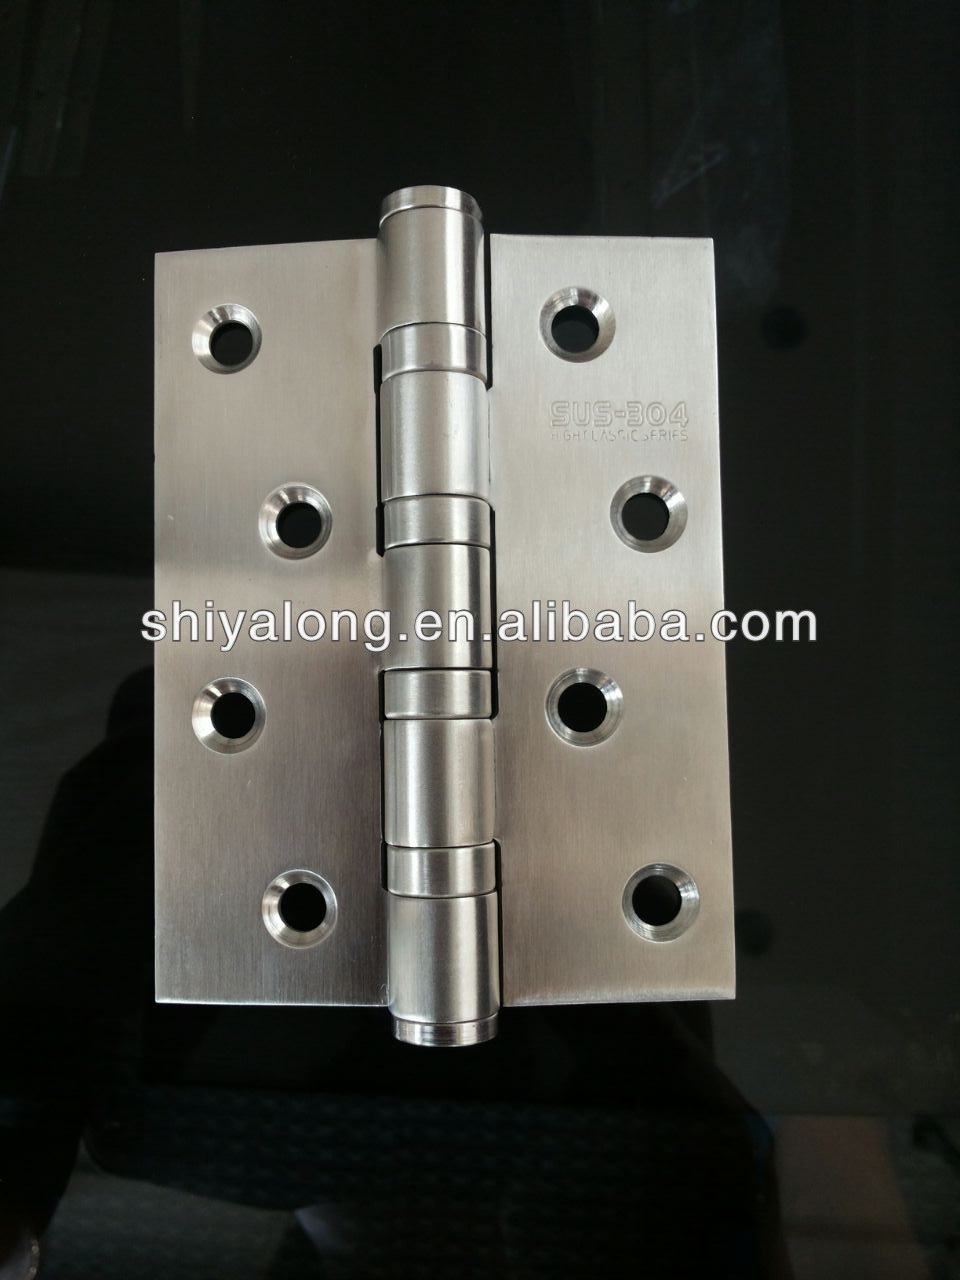 SS 304 stainless steel door hinge size by 4*4*3 mm